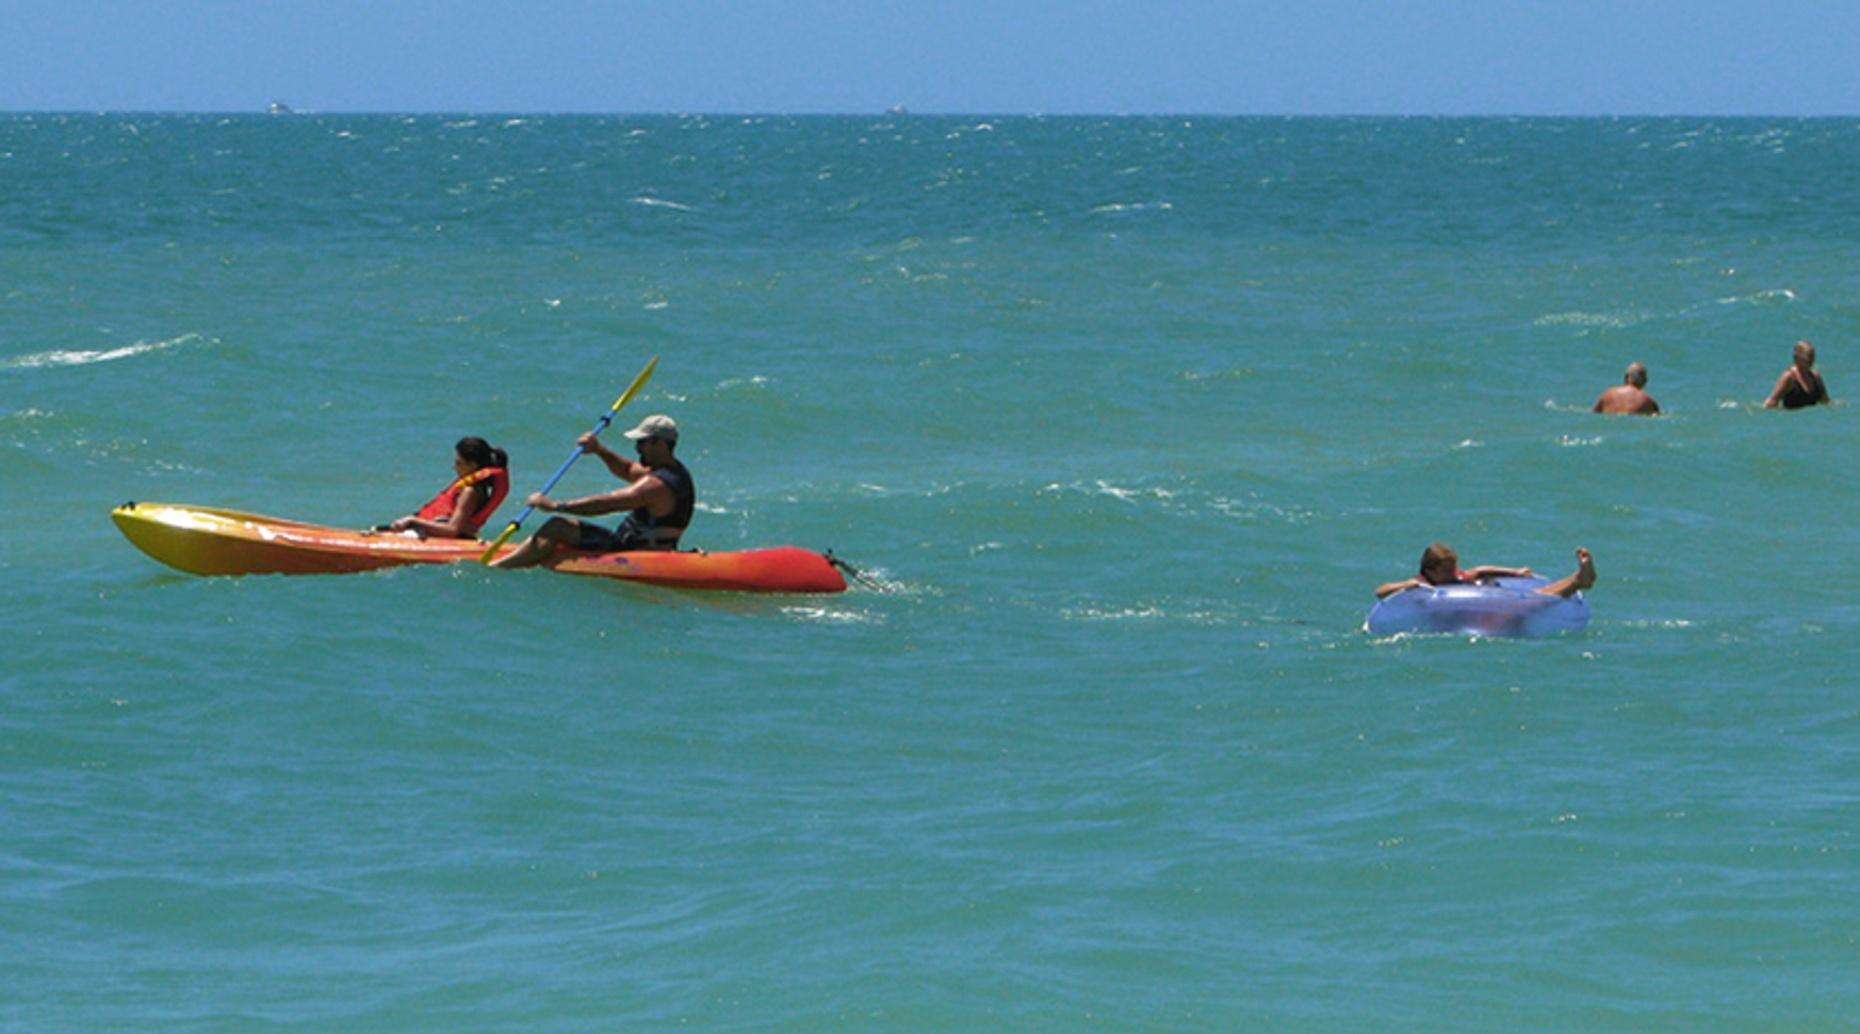 Tandem Kayak Rental in Safety Harbor